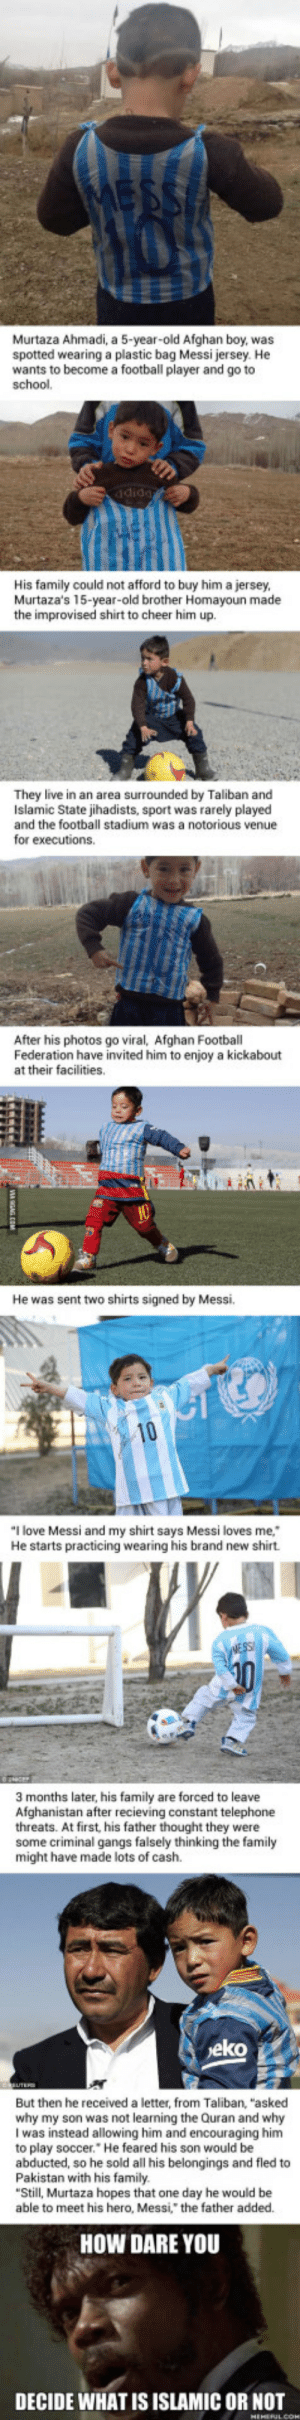 "Happy Story Of Messis Biggest Fan, Afghan Plastic Bag Boy Turns Very Sad: Murtaza Ahmadi, a 5-year-old Afghan boy, was  spotted wearing a plastic bag Messi jersey. He  wants to become a football player and go to  school.  dida  His family could not afford to buy him a jersey,  Murtaza's 15-year-old brother Homayoun made  the improvised shirt to cheer him up.  They live in an area surrounded by Taliban and  Islamic State jihadists, sport was rarely played  and the football stadium was a notorious venue  for executions.  After his photos go viral, Afghan Football  Federation have invited him to enjoy a kickabout  at their facilities.  He was sent two shirts signed by Messi.  ""I love Messi and my shirt says Messi loves me,  He starts practicing wearing his brand new shirt  3 months later, his family are forced to leave  Afghanistan after recieving constant telephone  threats. At first, his father thought they were  some criminal gangs falsely thinking the family  might have made lots of cash.  eko  But then he received a letter, from Taliban, ""asked  why my son was not learning the Quran and why  I was instead allowing him and encouraging him  to play soccer. He feared his son would be  abducted, so he sold all his belongings and fled to  Pakistan with his family.  Still, Murtaza hopes that one day he would be  able to meet his hero, Messi, the father added.  HOW DARE YOU  DECIDE WHAT IS ISLAMIC OR NOT Happy Story Of Messis Biggest Fan, Afghan Plastic Bag Boy Turns Very Sad"